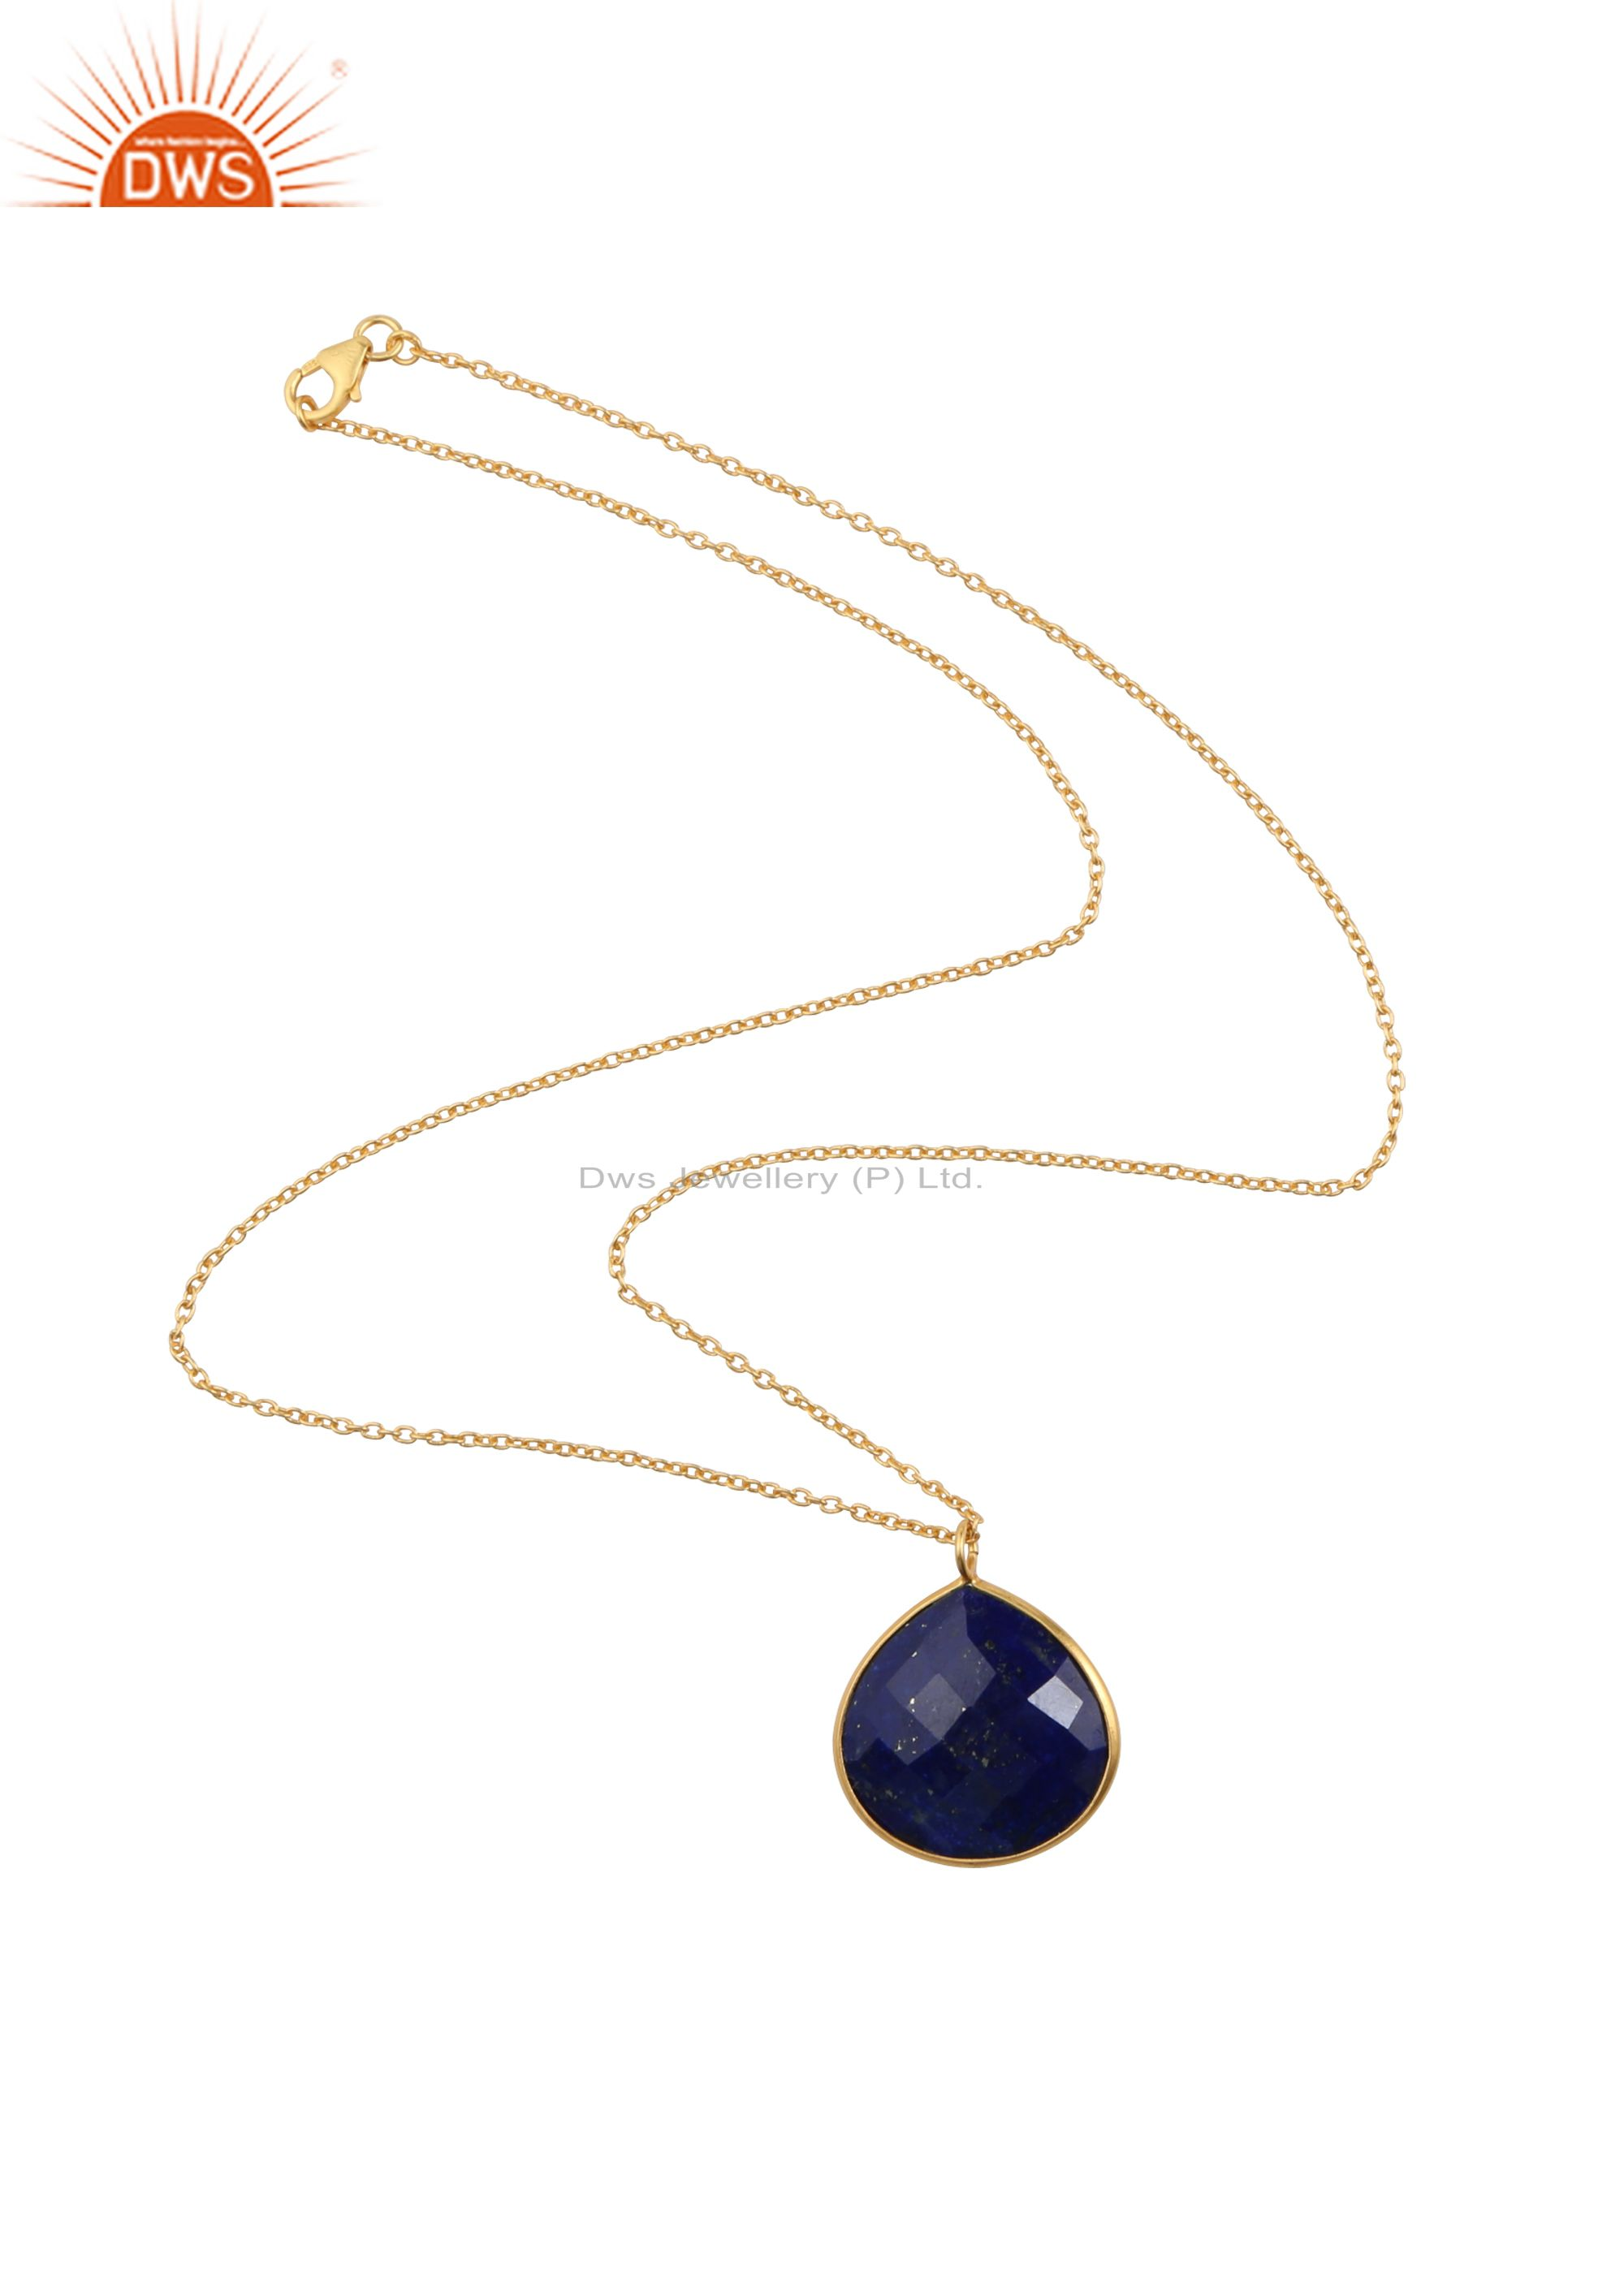 22K Yellow Gold Plated Sterling Silver Lapis Lazuli Bezel Set Pendant With Chain